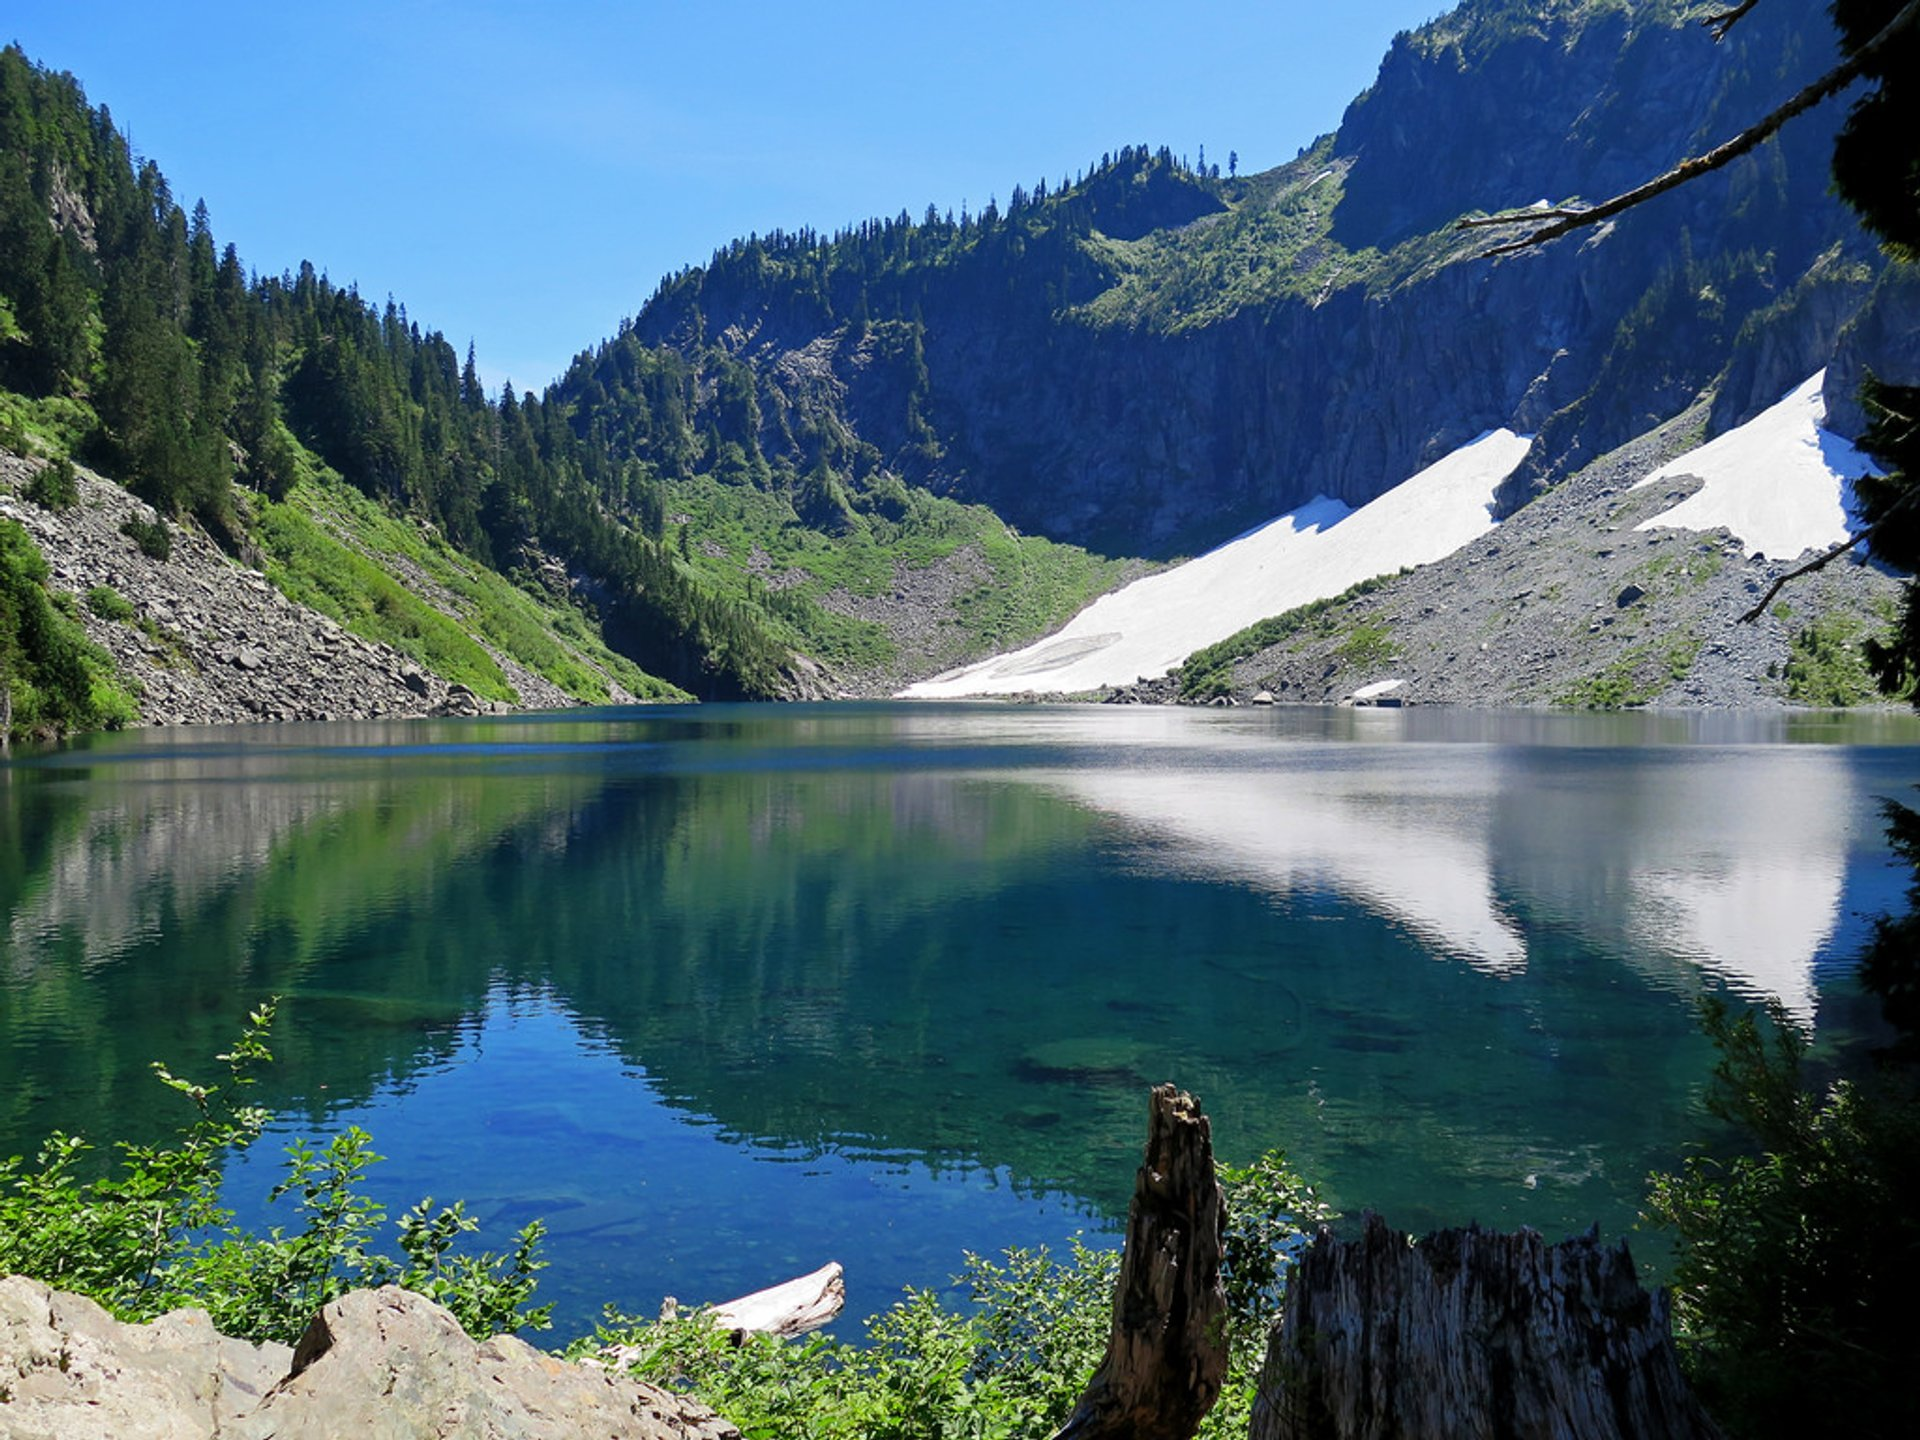 Best time to see Lake Serene & Bridal Veil Falls in Seattle 2019